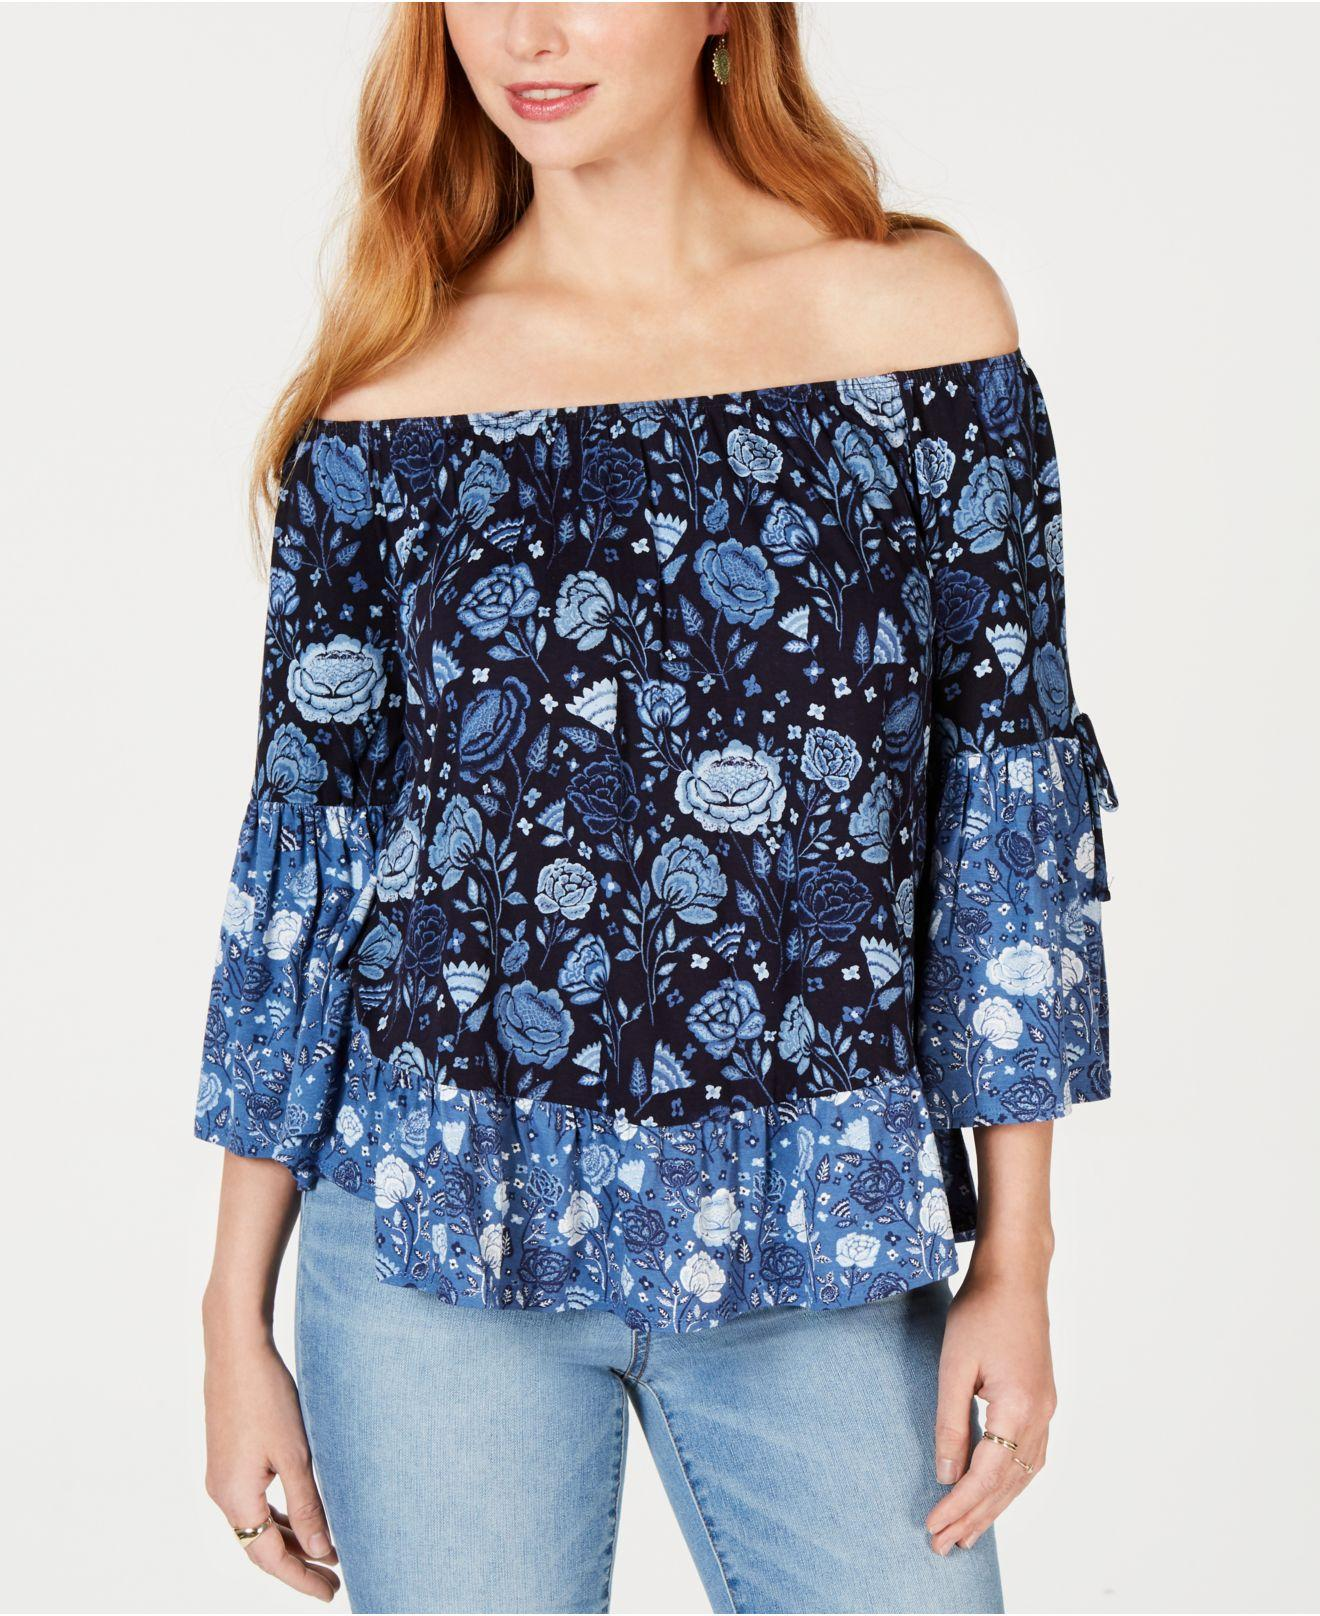 5a08824191b50a Style   Co. Women s Blue Printed Off-the-shoulder Top ...